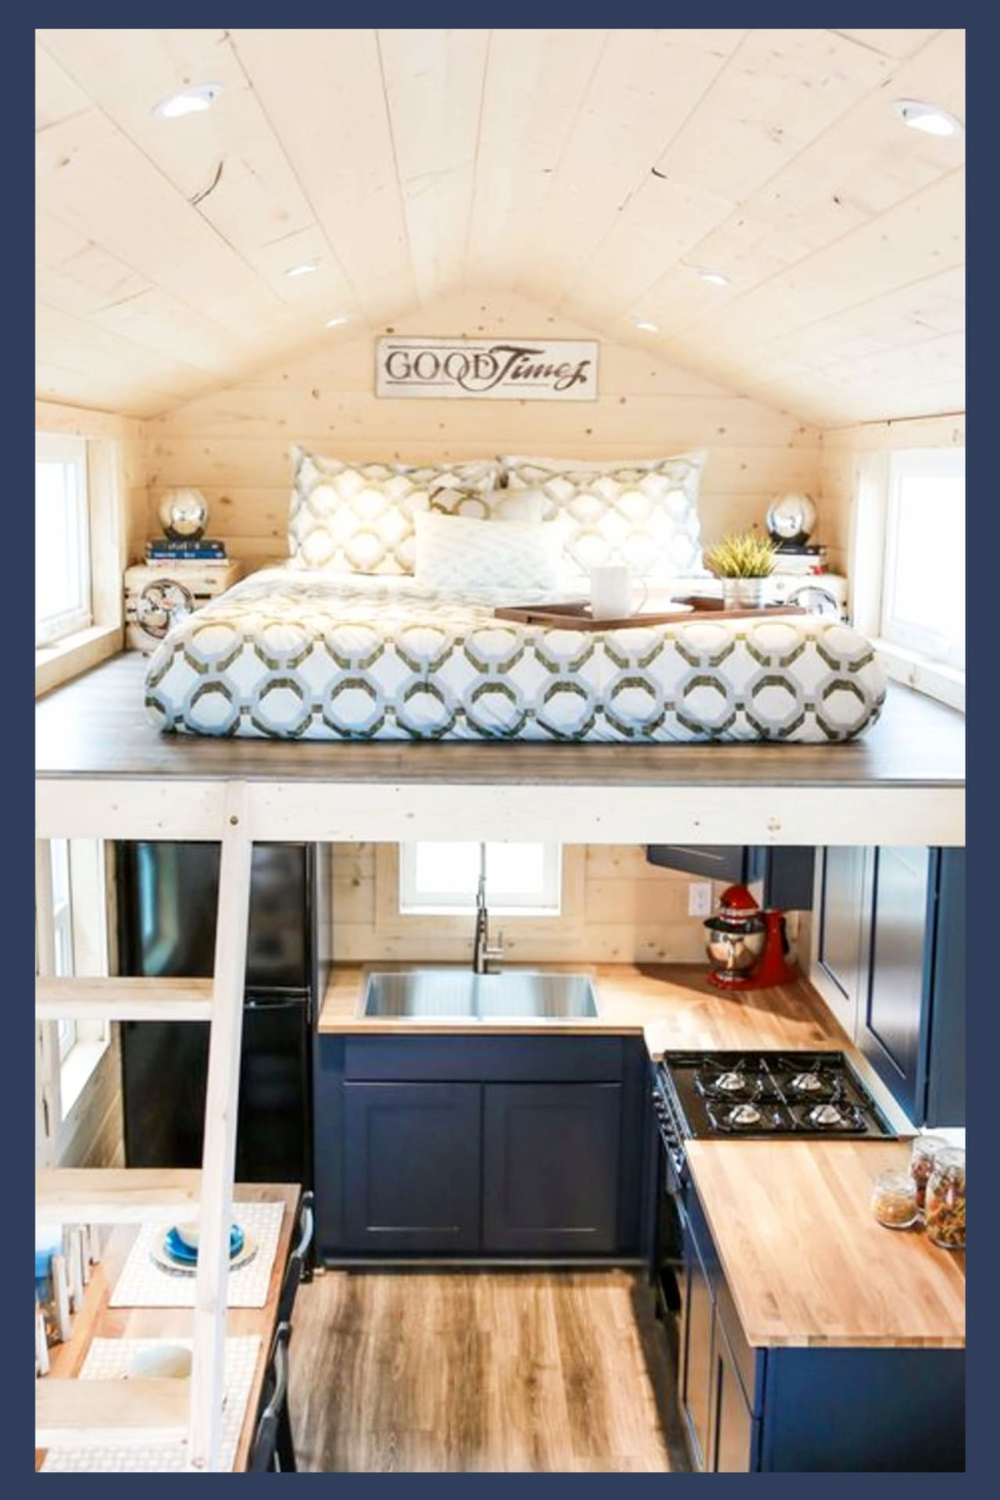 Tiny House Ideas Inside Tiny Houses Pictures Of Tiny Homes Inside And Out Videos Too Tiny House Interior